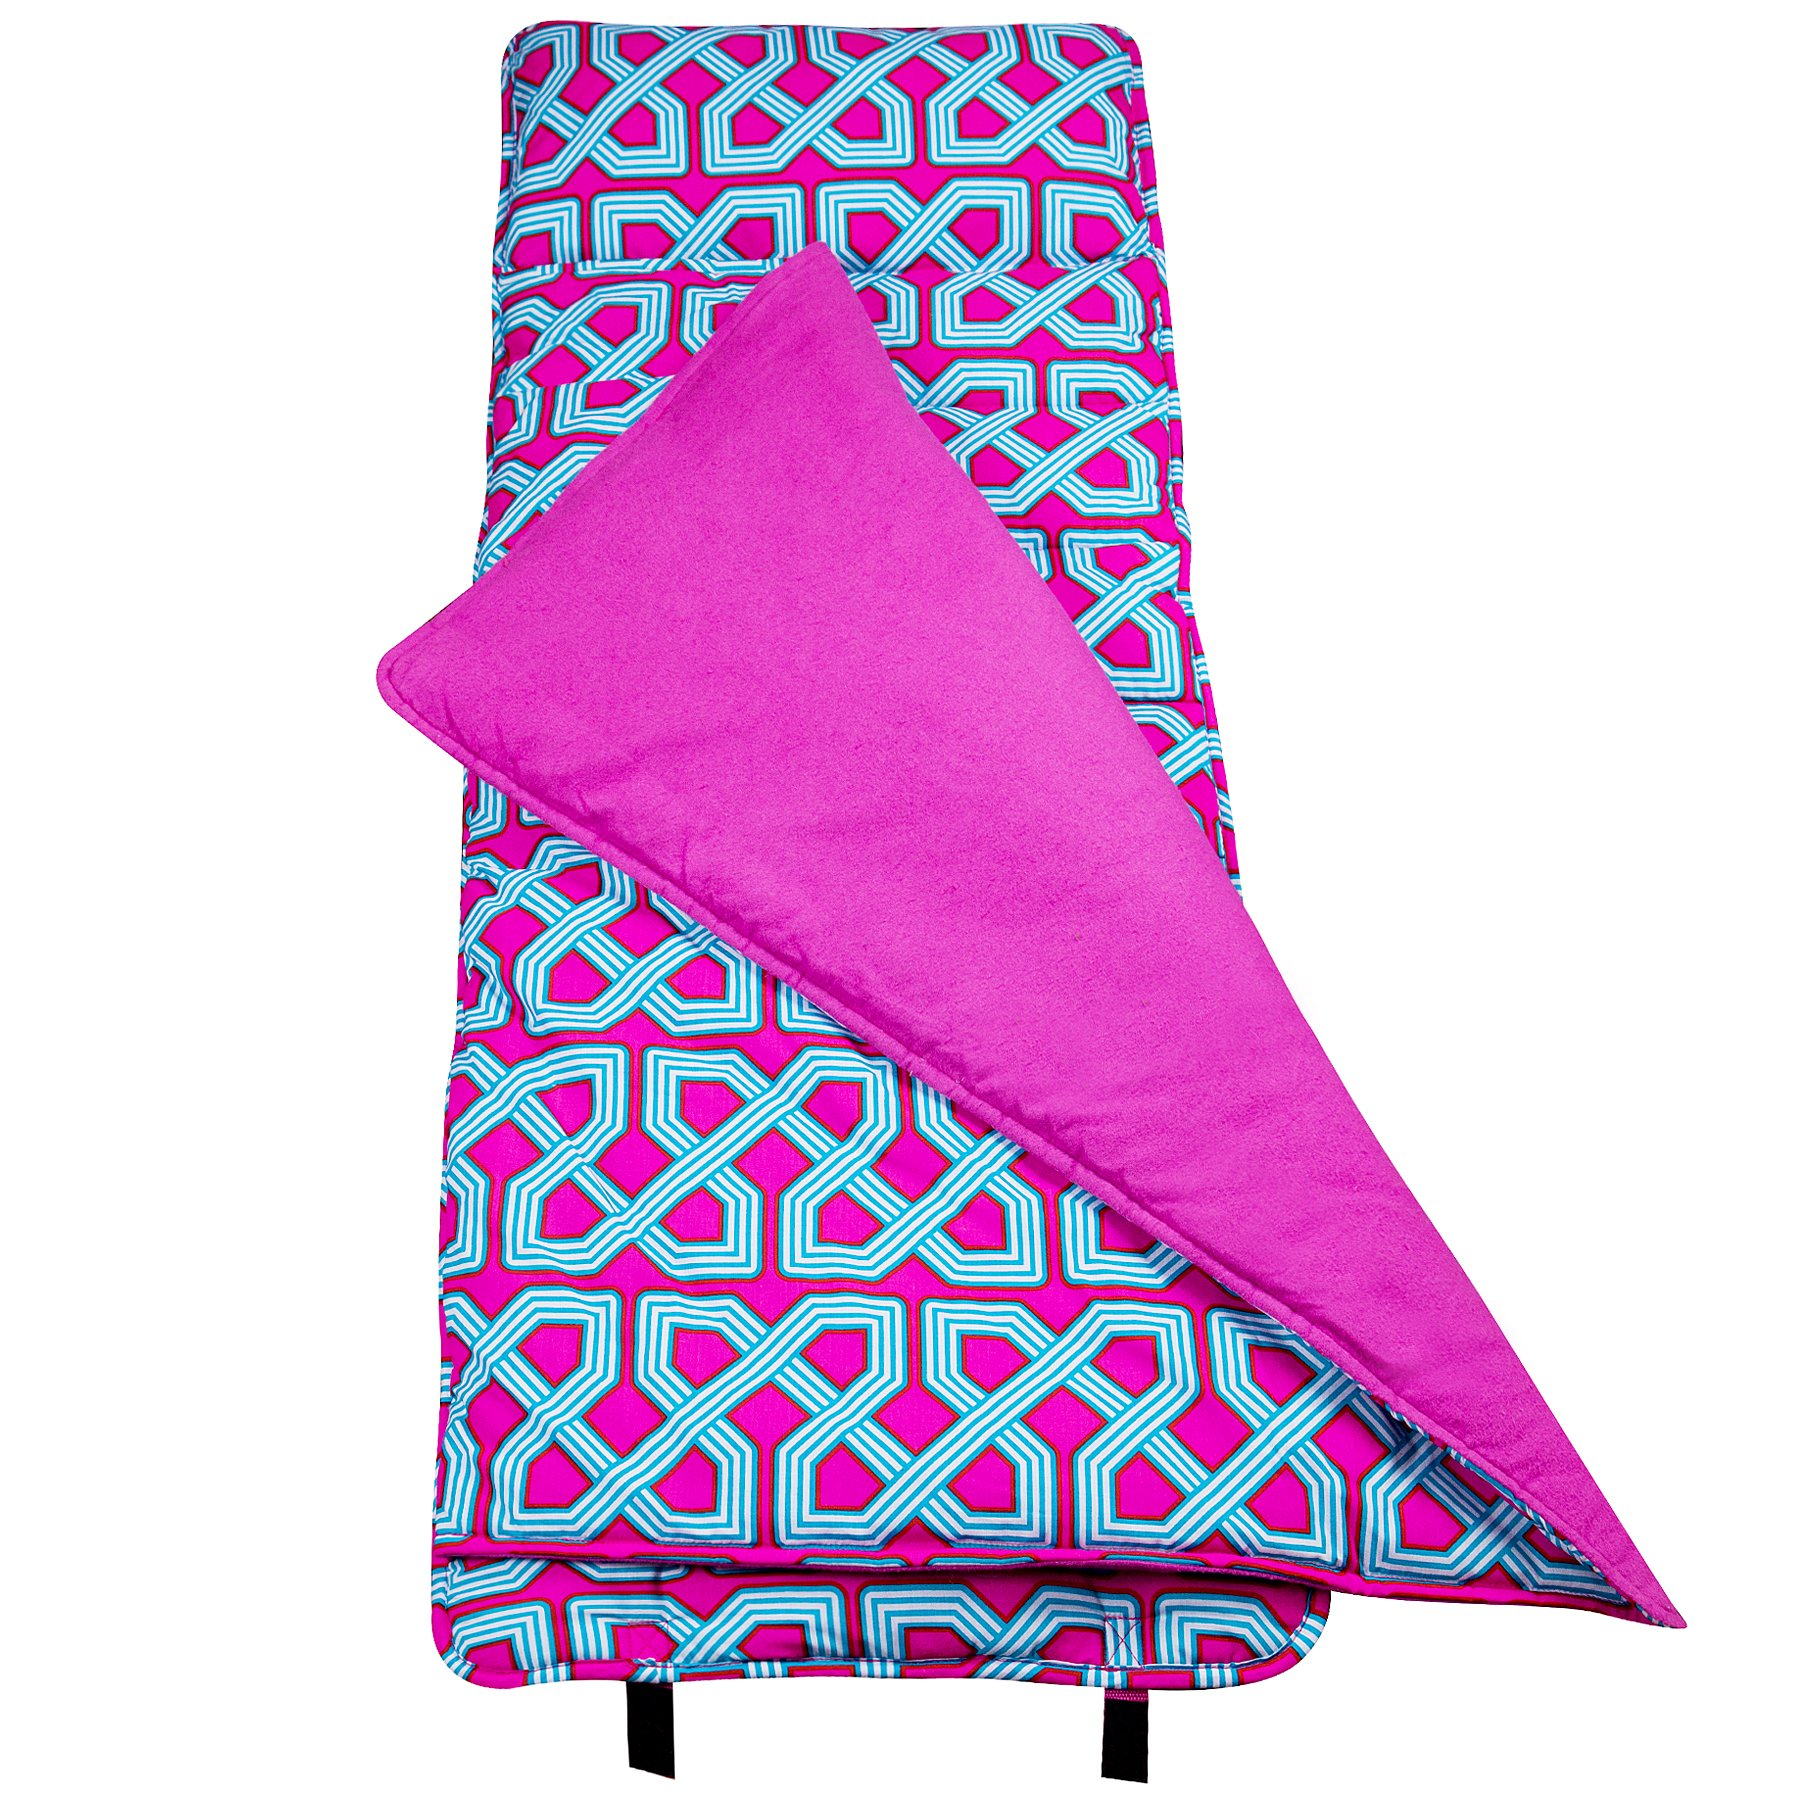 Original Nap Mat, Wildkin Children's Original Nap Mat with Built in Blanket and Pillowcase, Pillow Insert Included, Premium Cotton and Microfiber Blend, Children Ages 3-7 years – Trellis